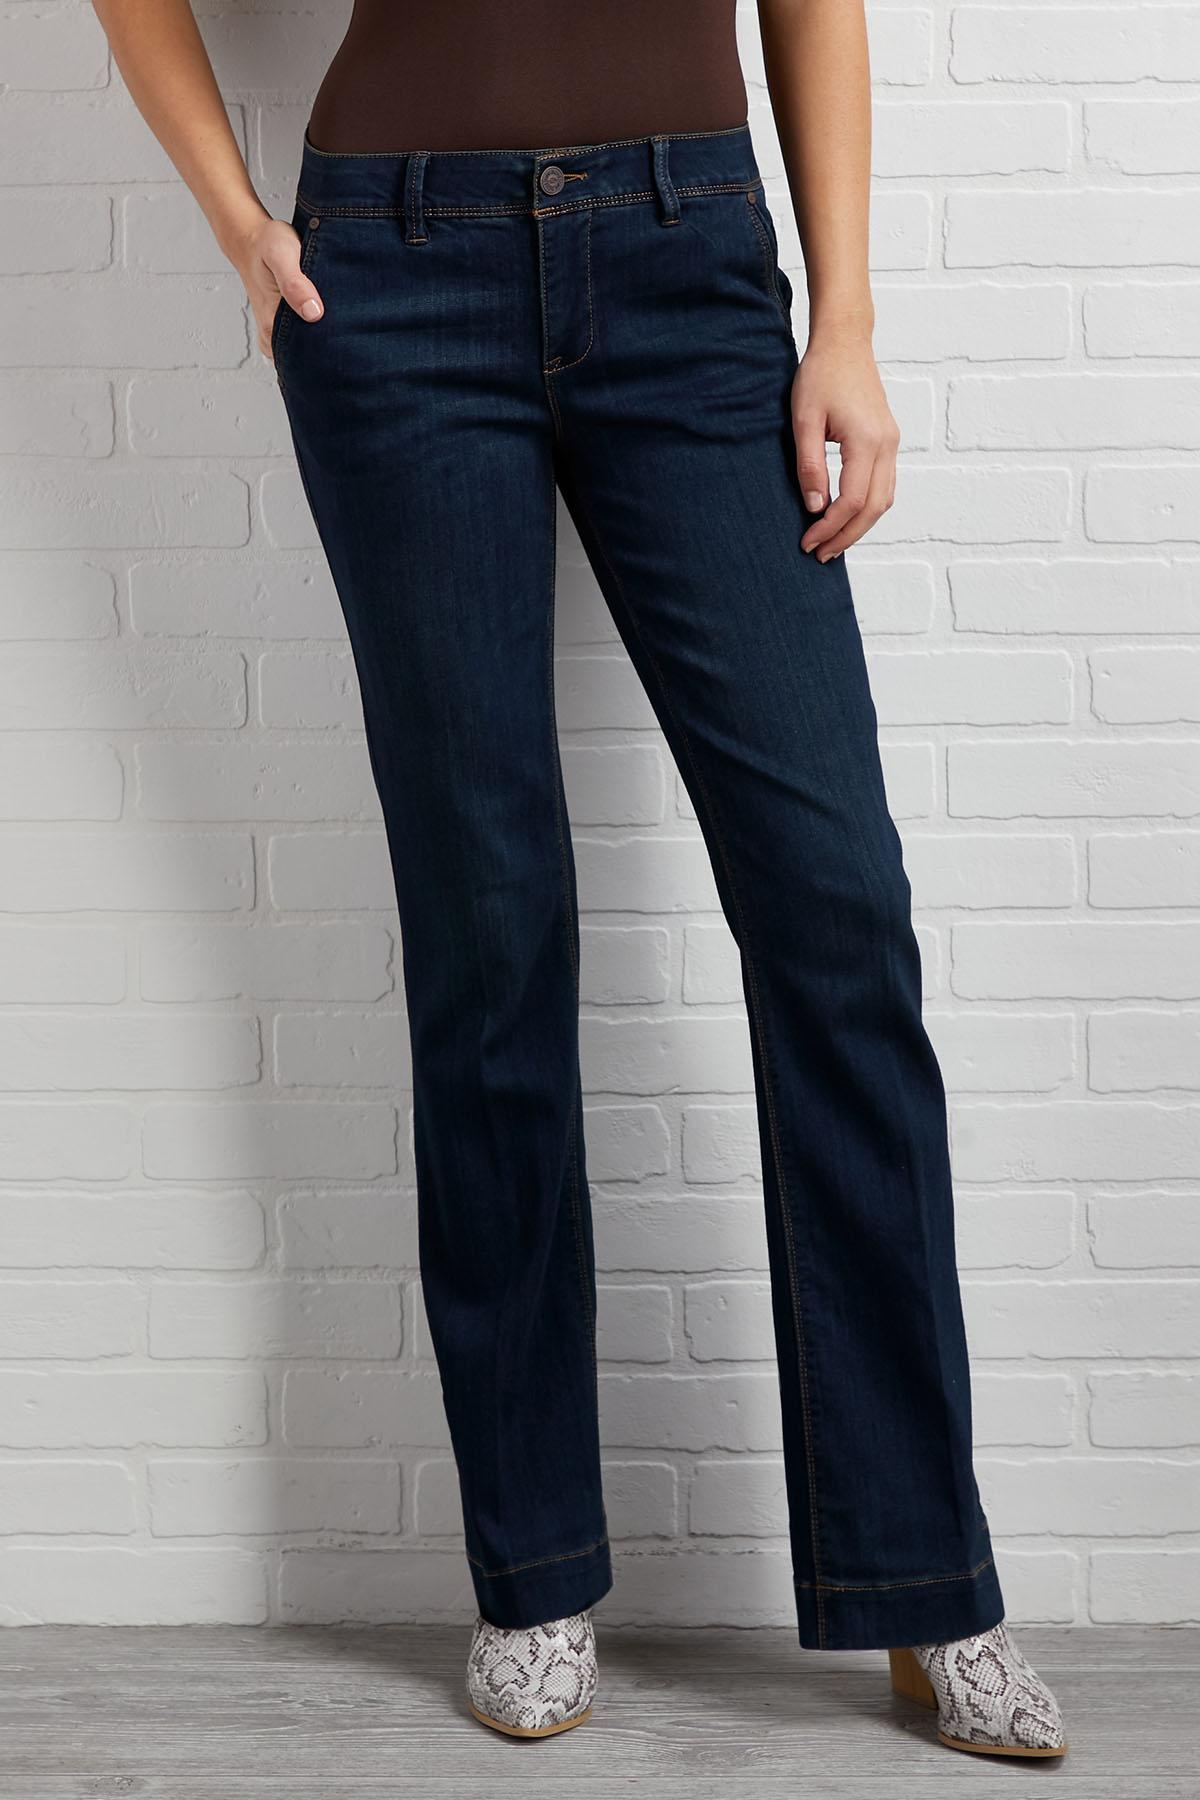 Nine To Five Jeans